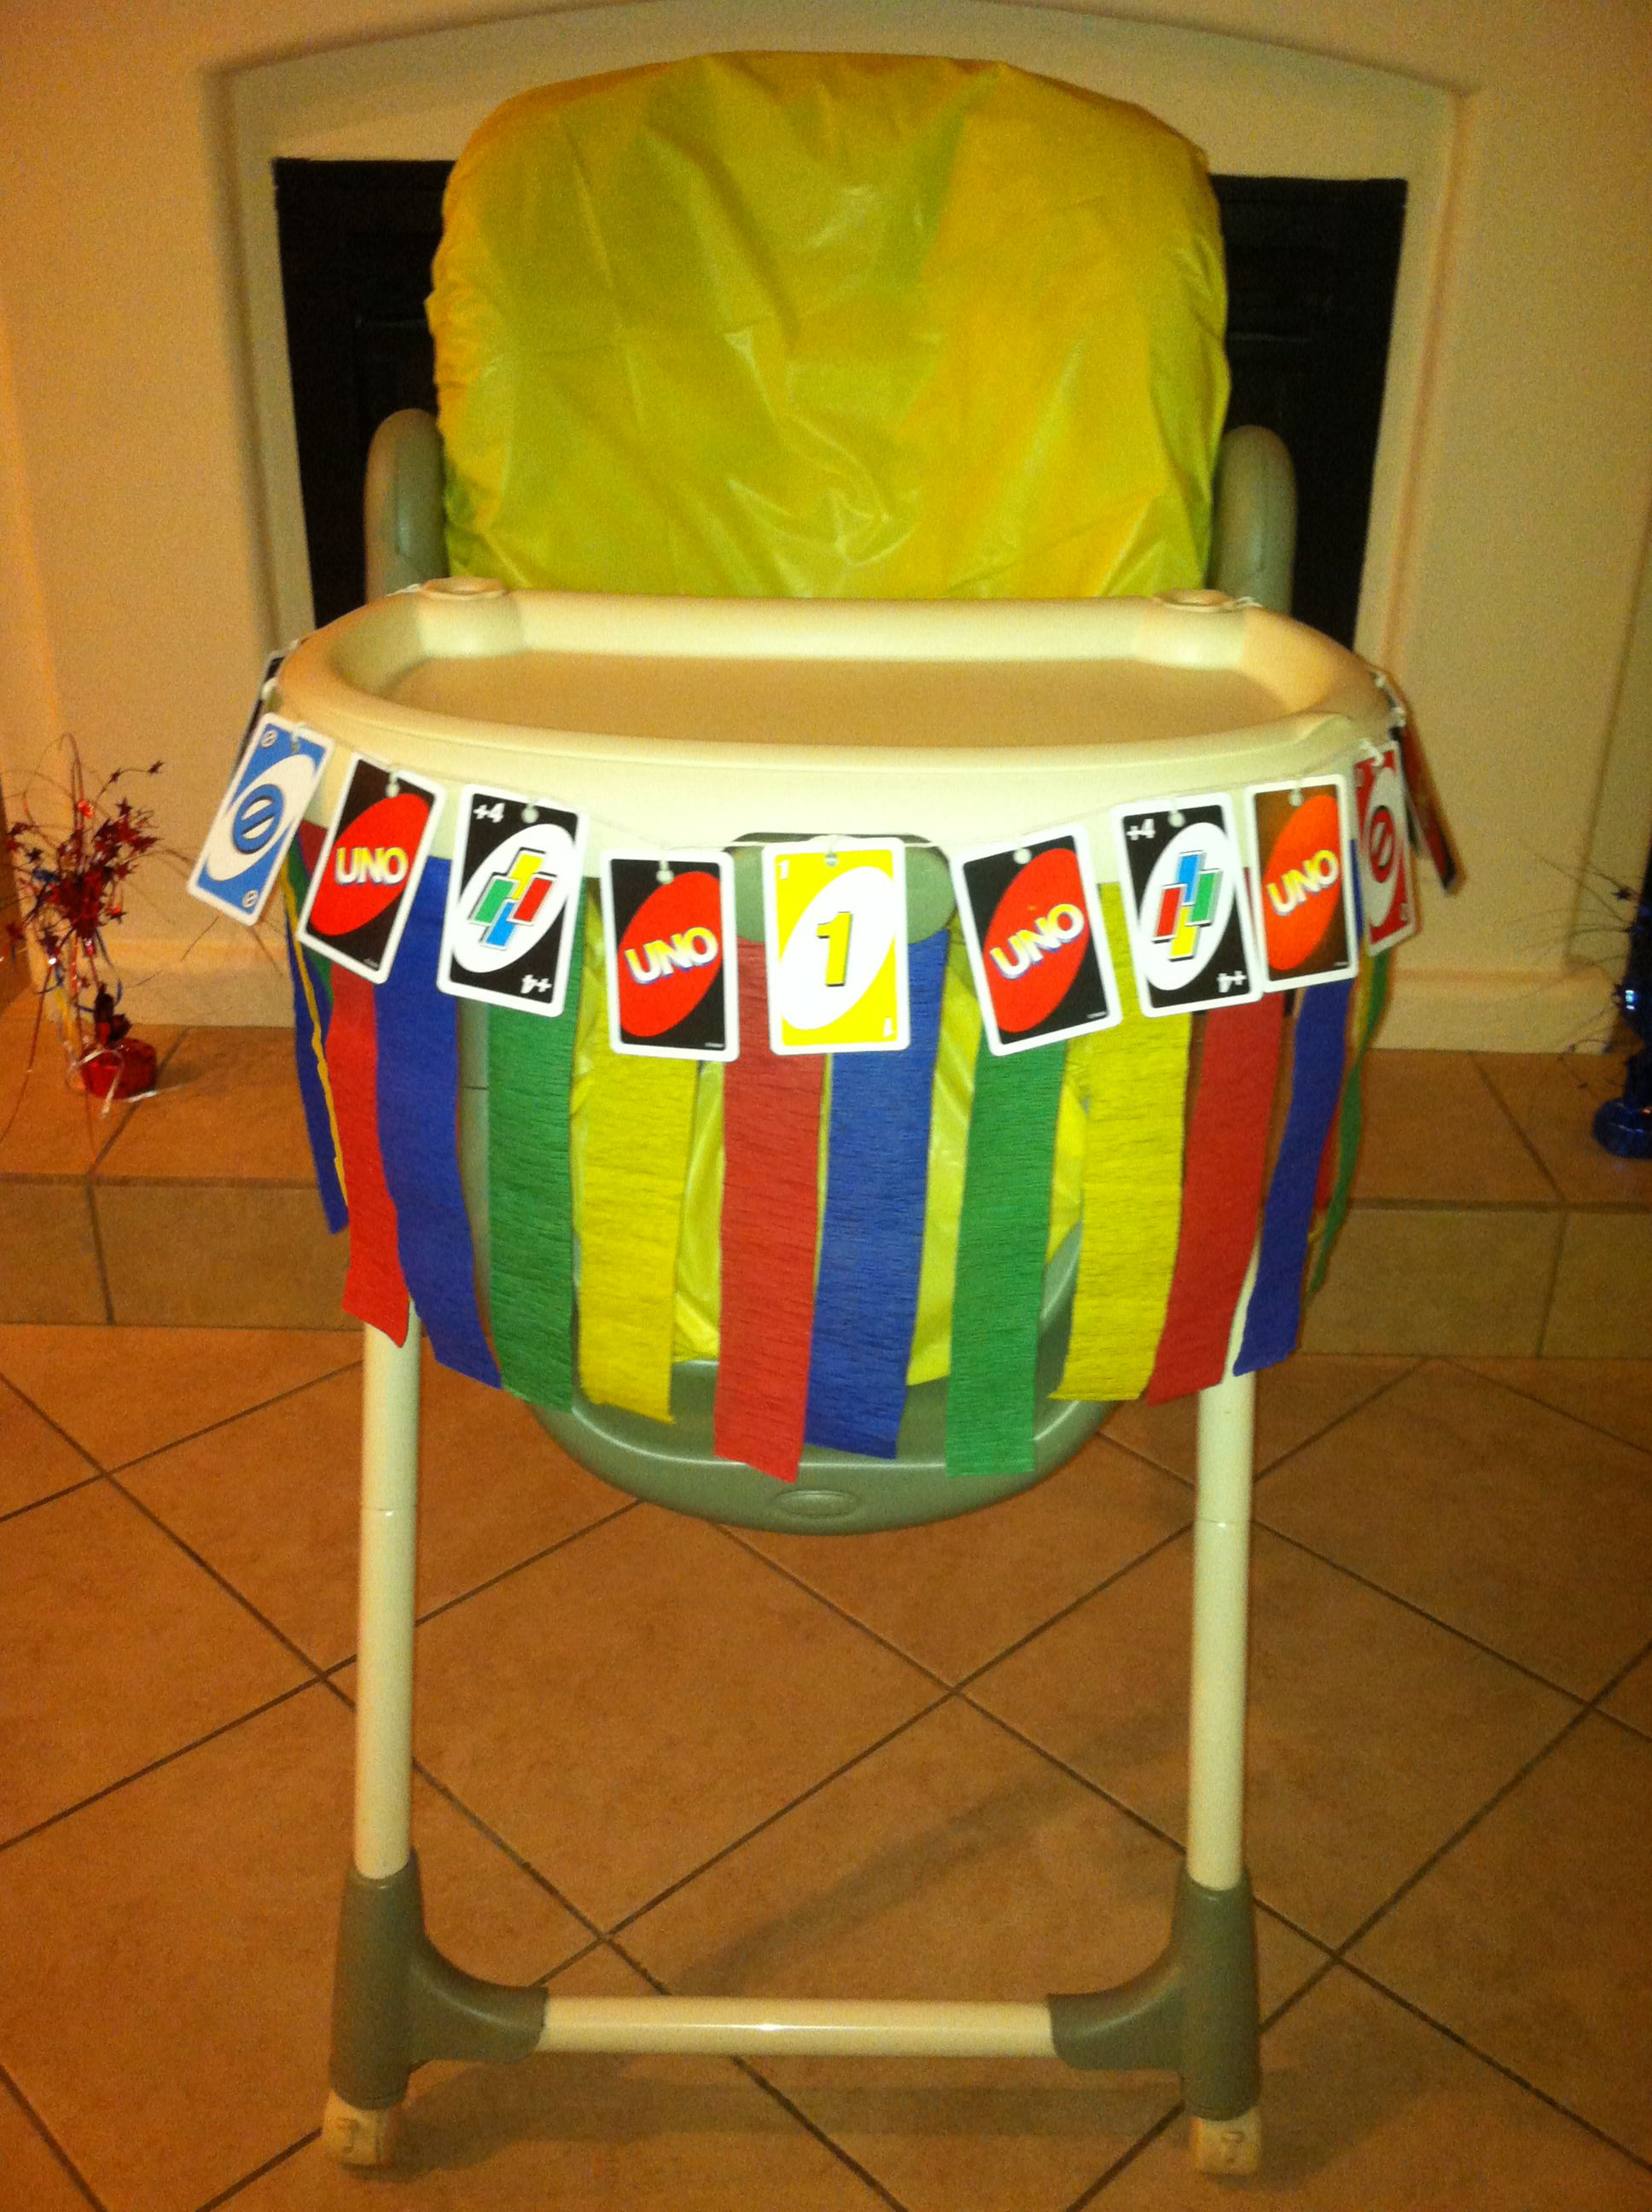 High Chair Table Cover Back Recliner Chairs Uno Theme Decor Plastic Cloth To Highchair Streamer And Regular Sized Cards Strung On Tiny Rope